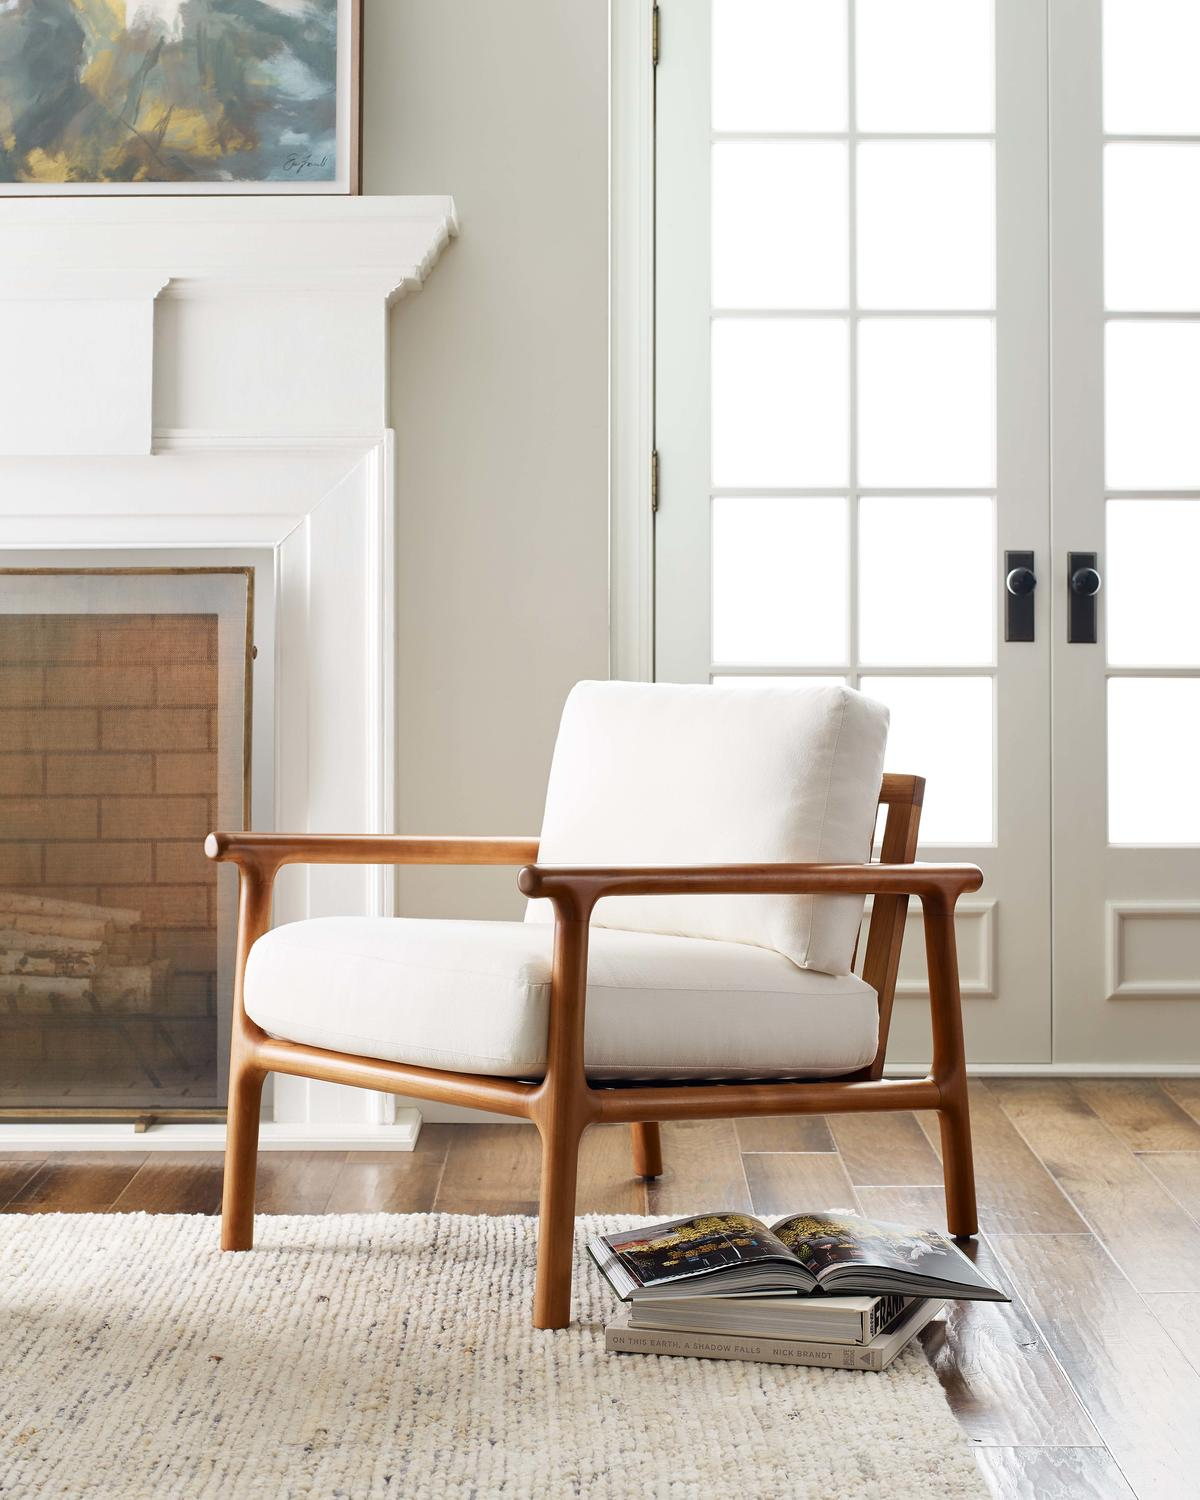 The Laguna chair from Mitchell Gold + Bob Williams